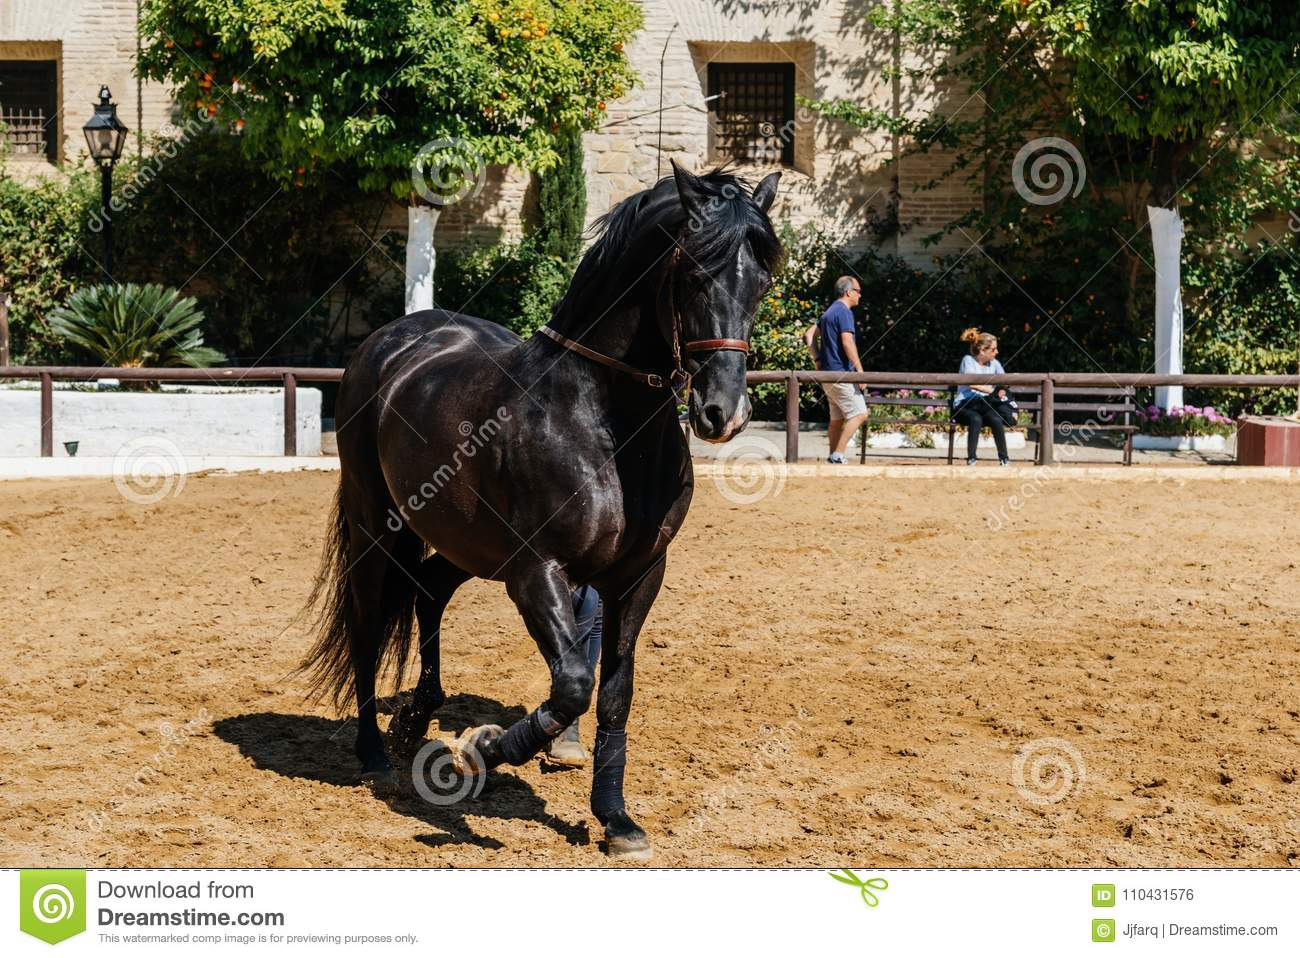 1 594 Beautiful Horse Stables Photos Free Royalty Free Stock Photos From Dreamstime